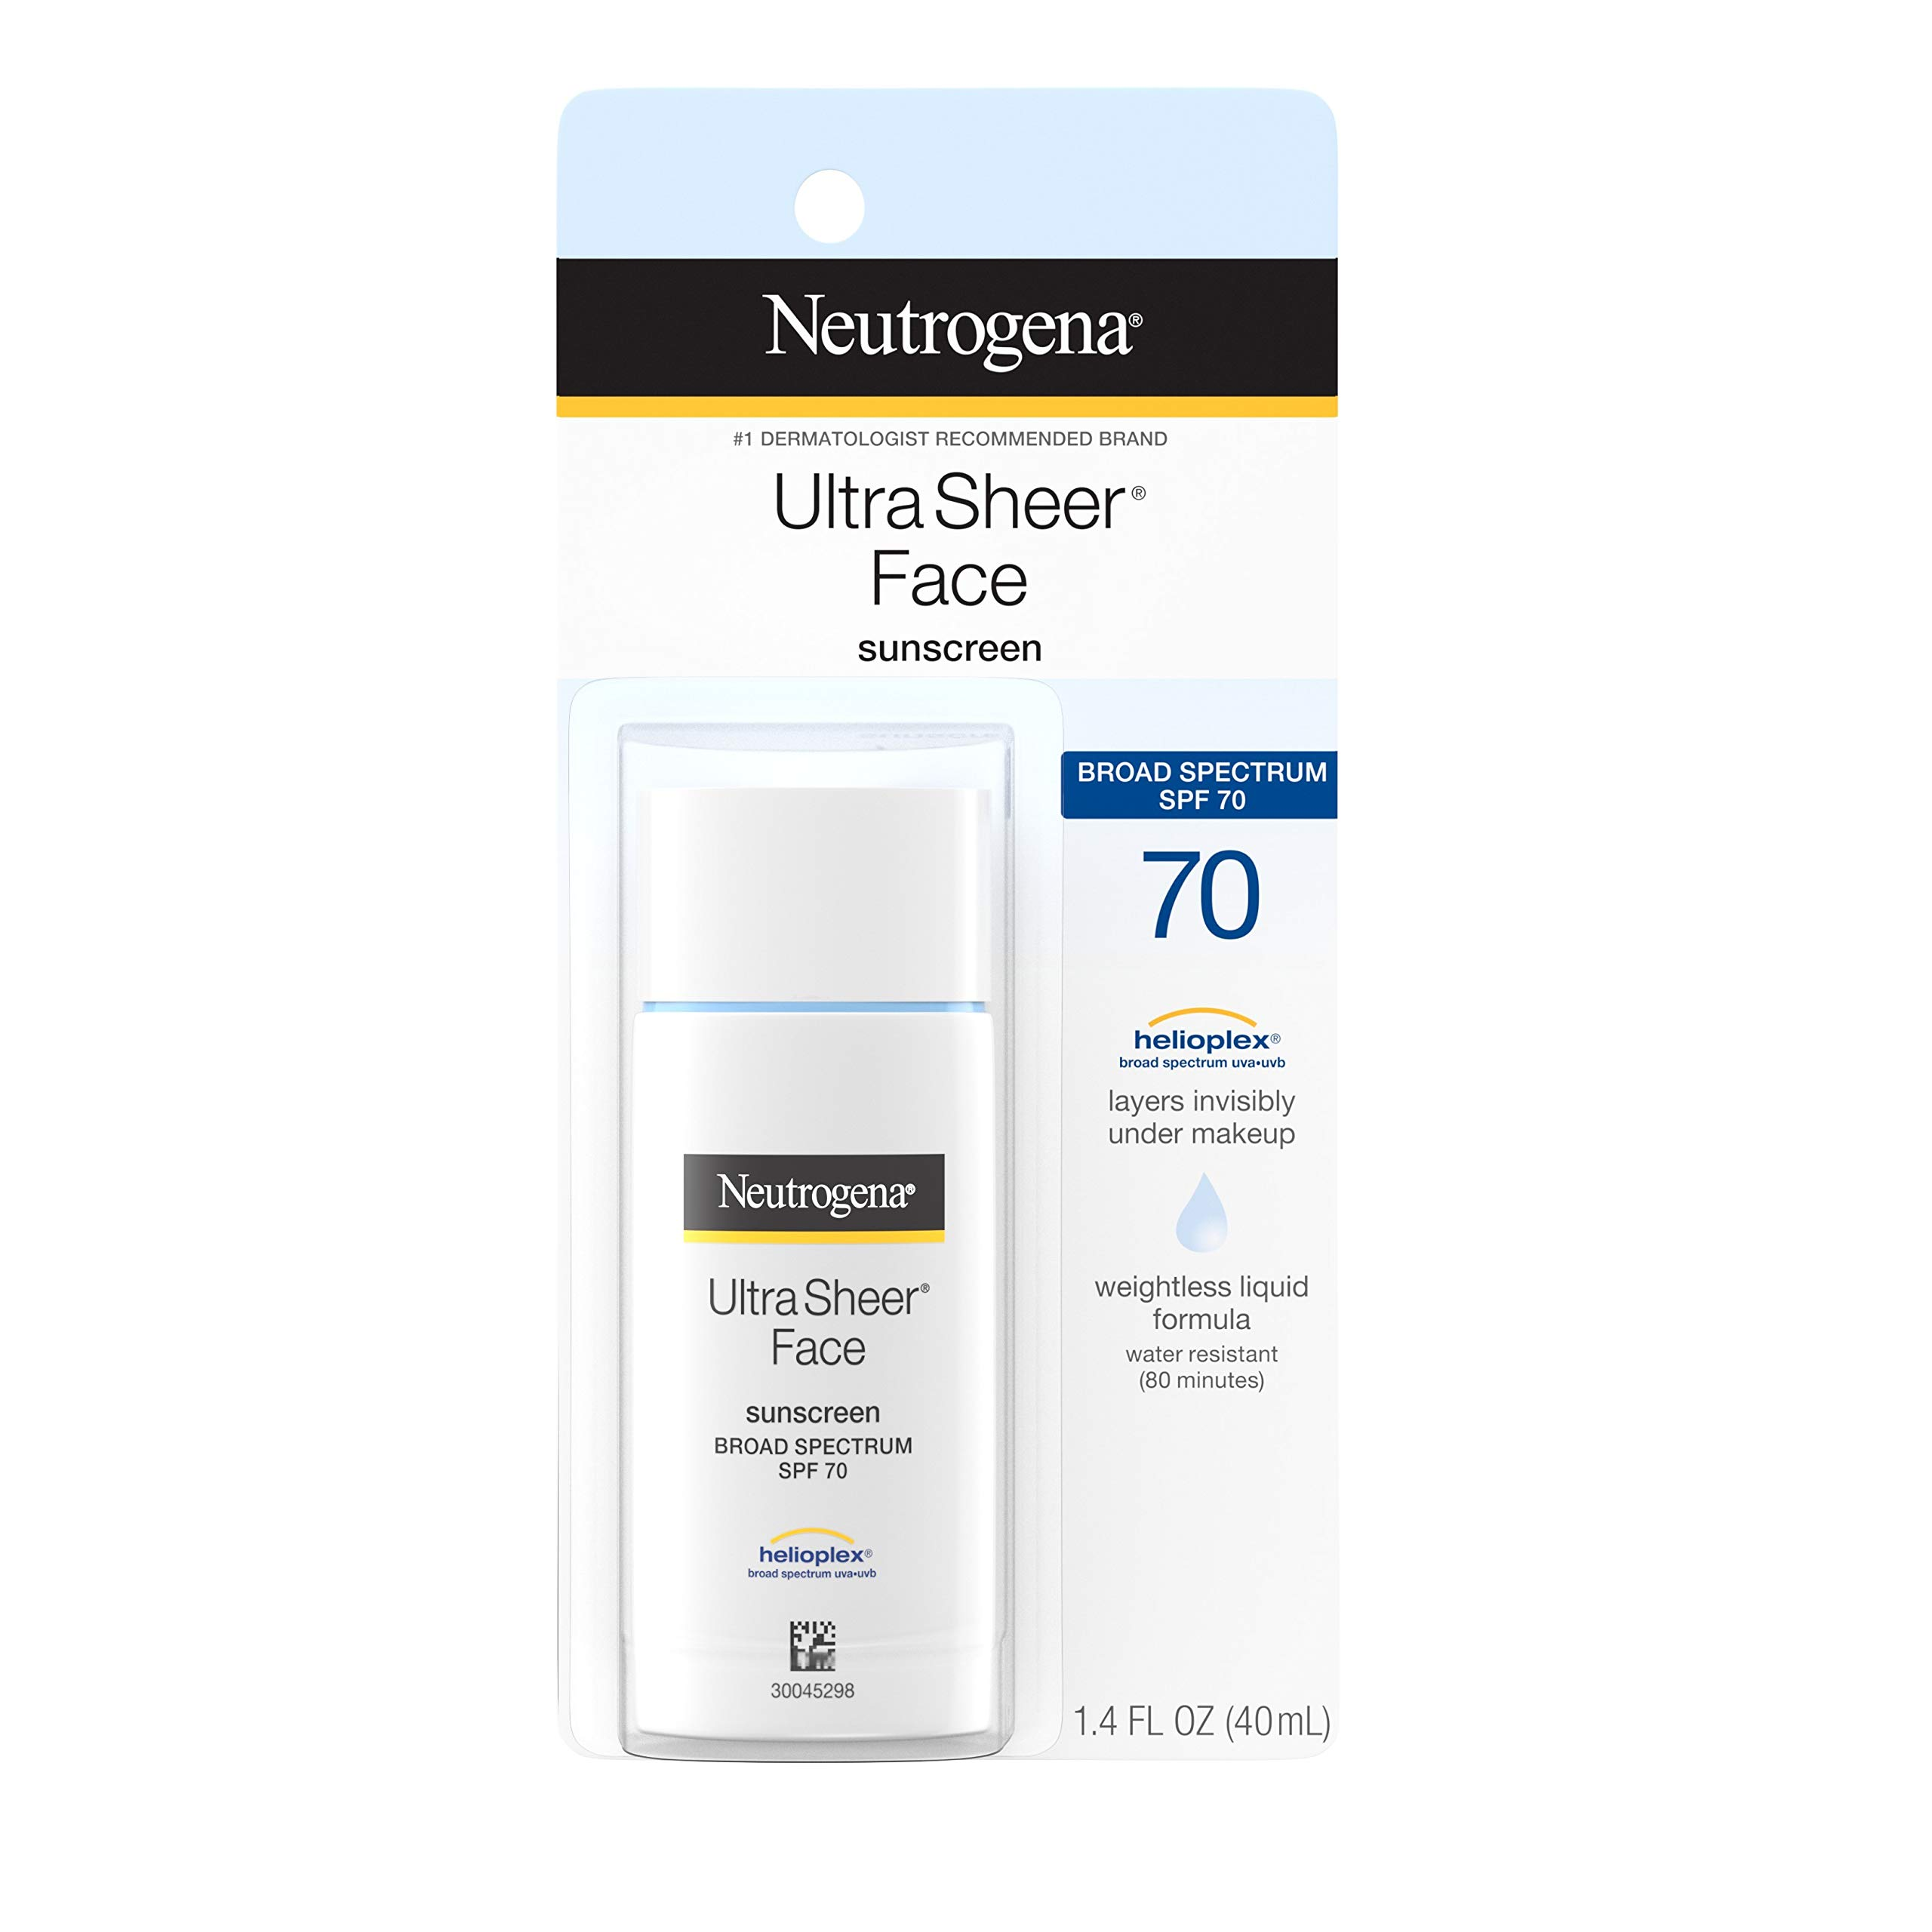 Neutrogena Ultra Sheer Liquid Daily Facial Sunscreen with Broad Spectrum SPF 70, Non-Comedogenic, Oil-free & PABA-Free Weightless Sun Protection, 1.4 fl. oz by Neutrogena